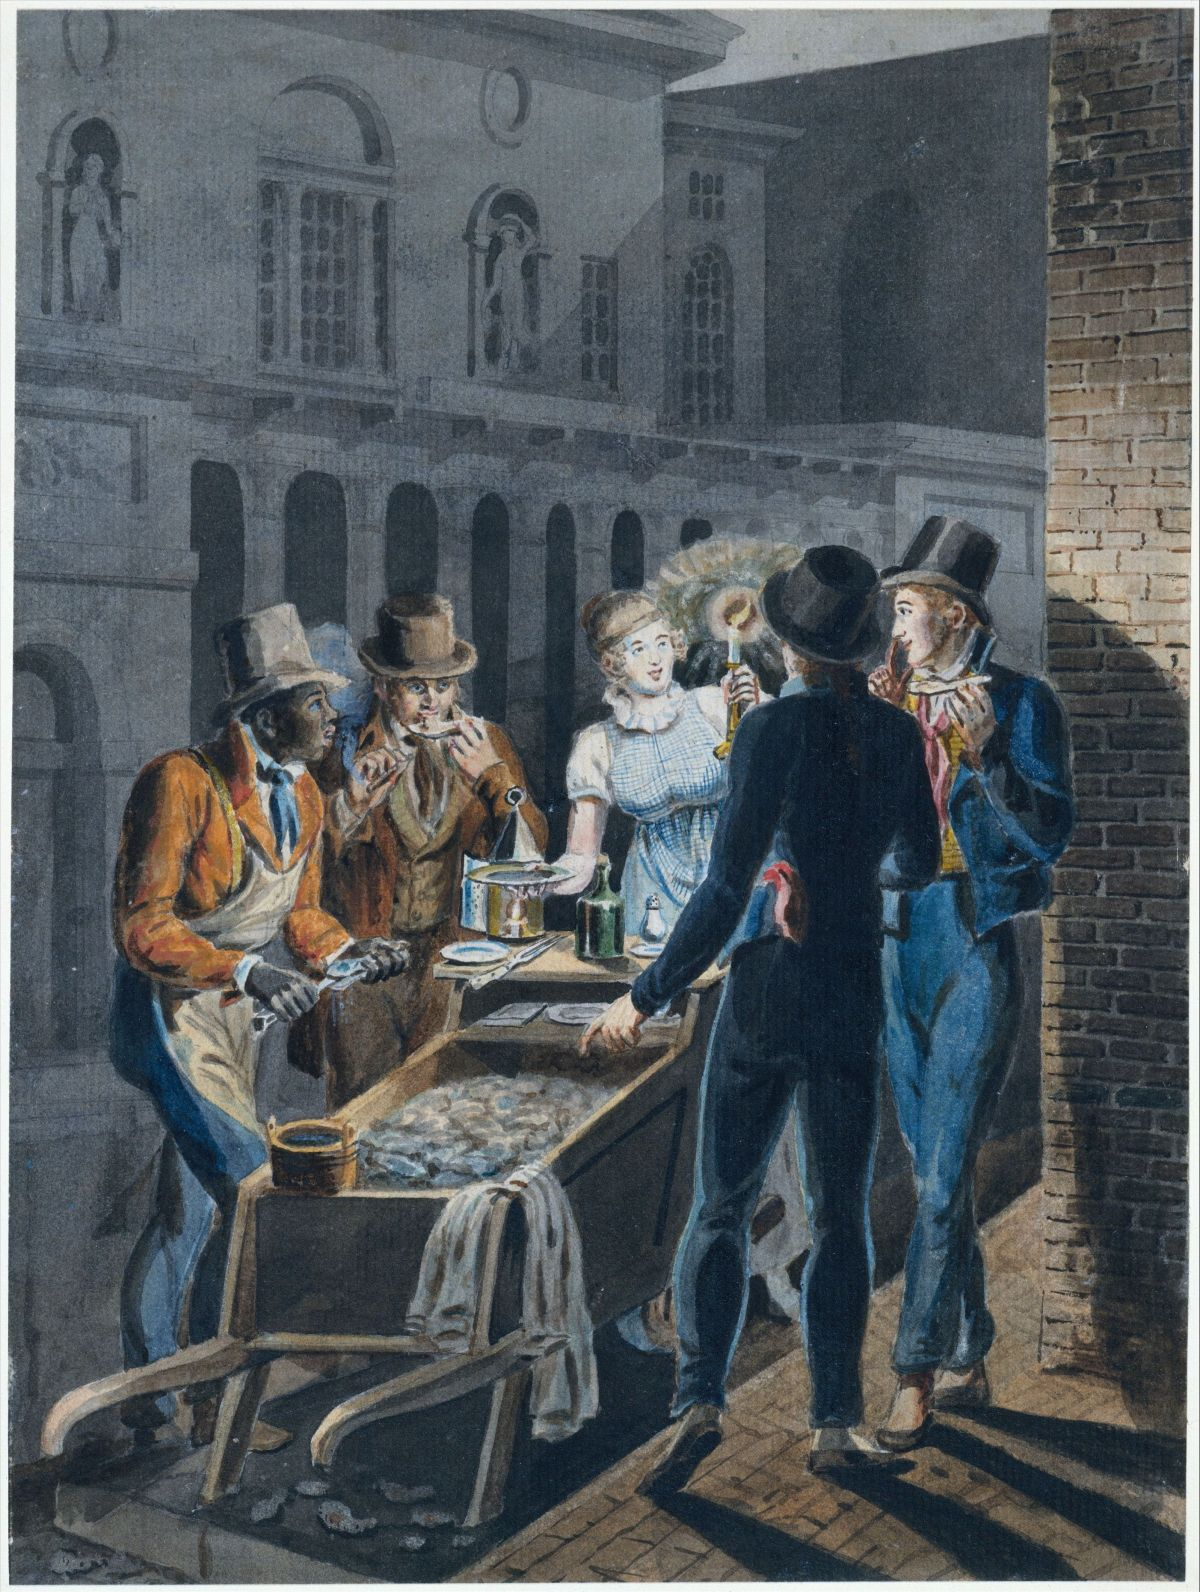 Nightlife in Philadelphia an Oyster Barrow in front of the Chestnut Street Theater by John Lewis Krimmel